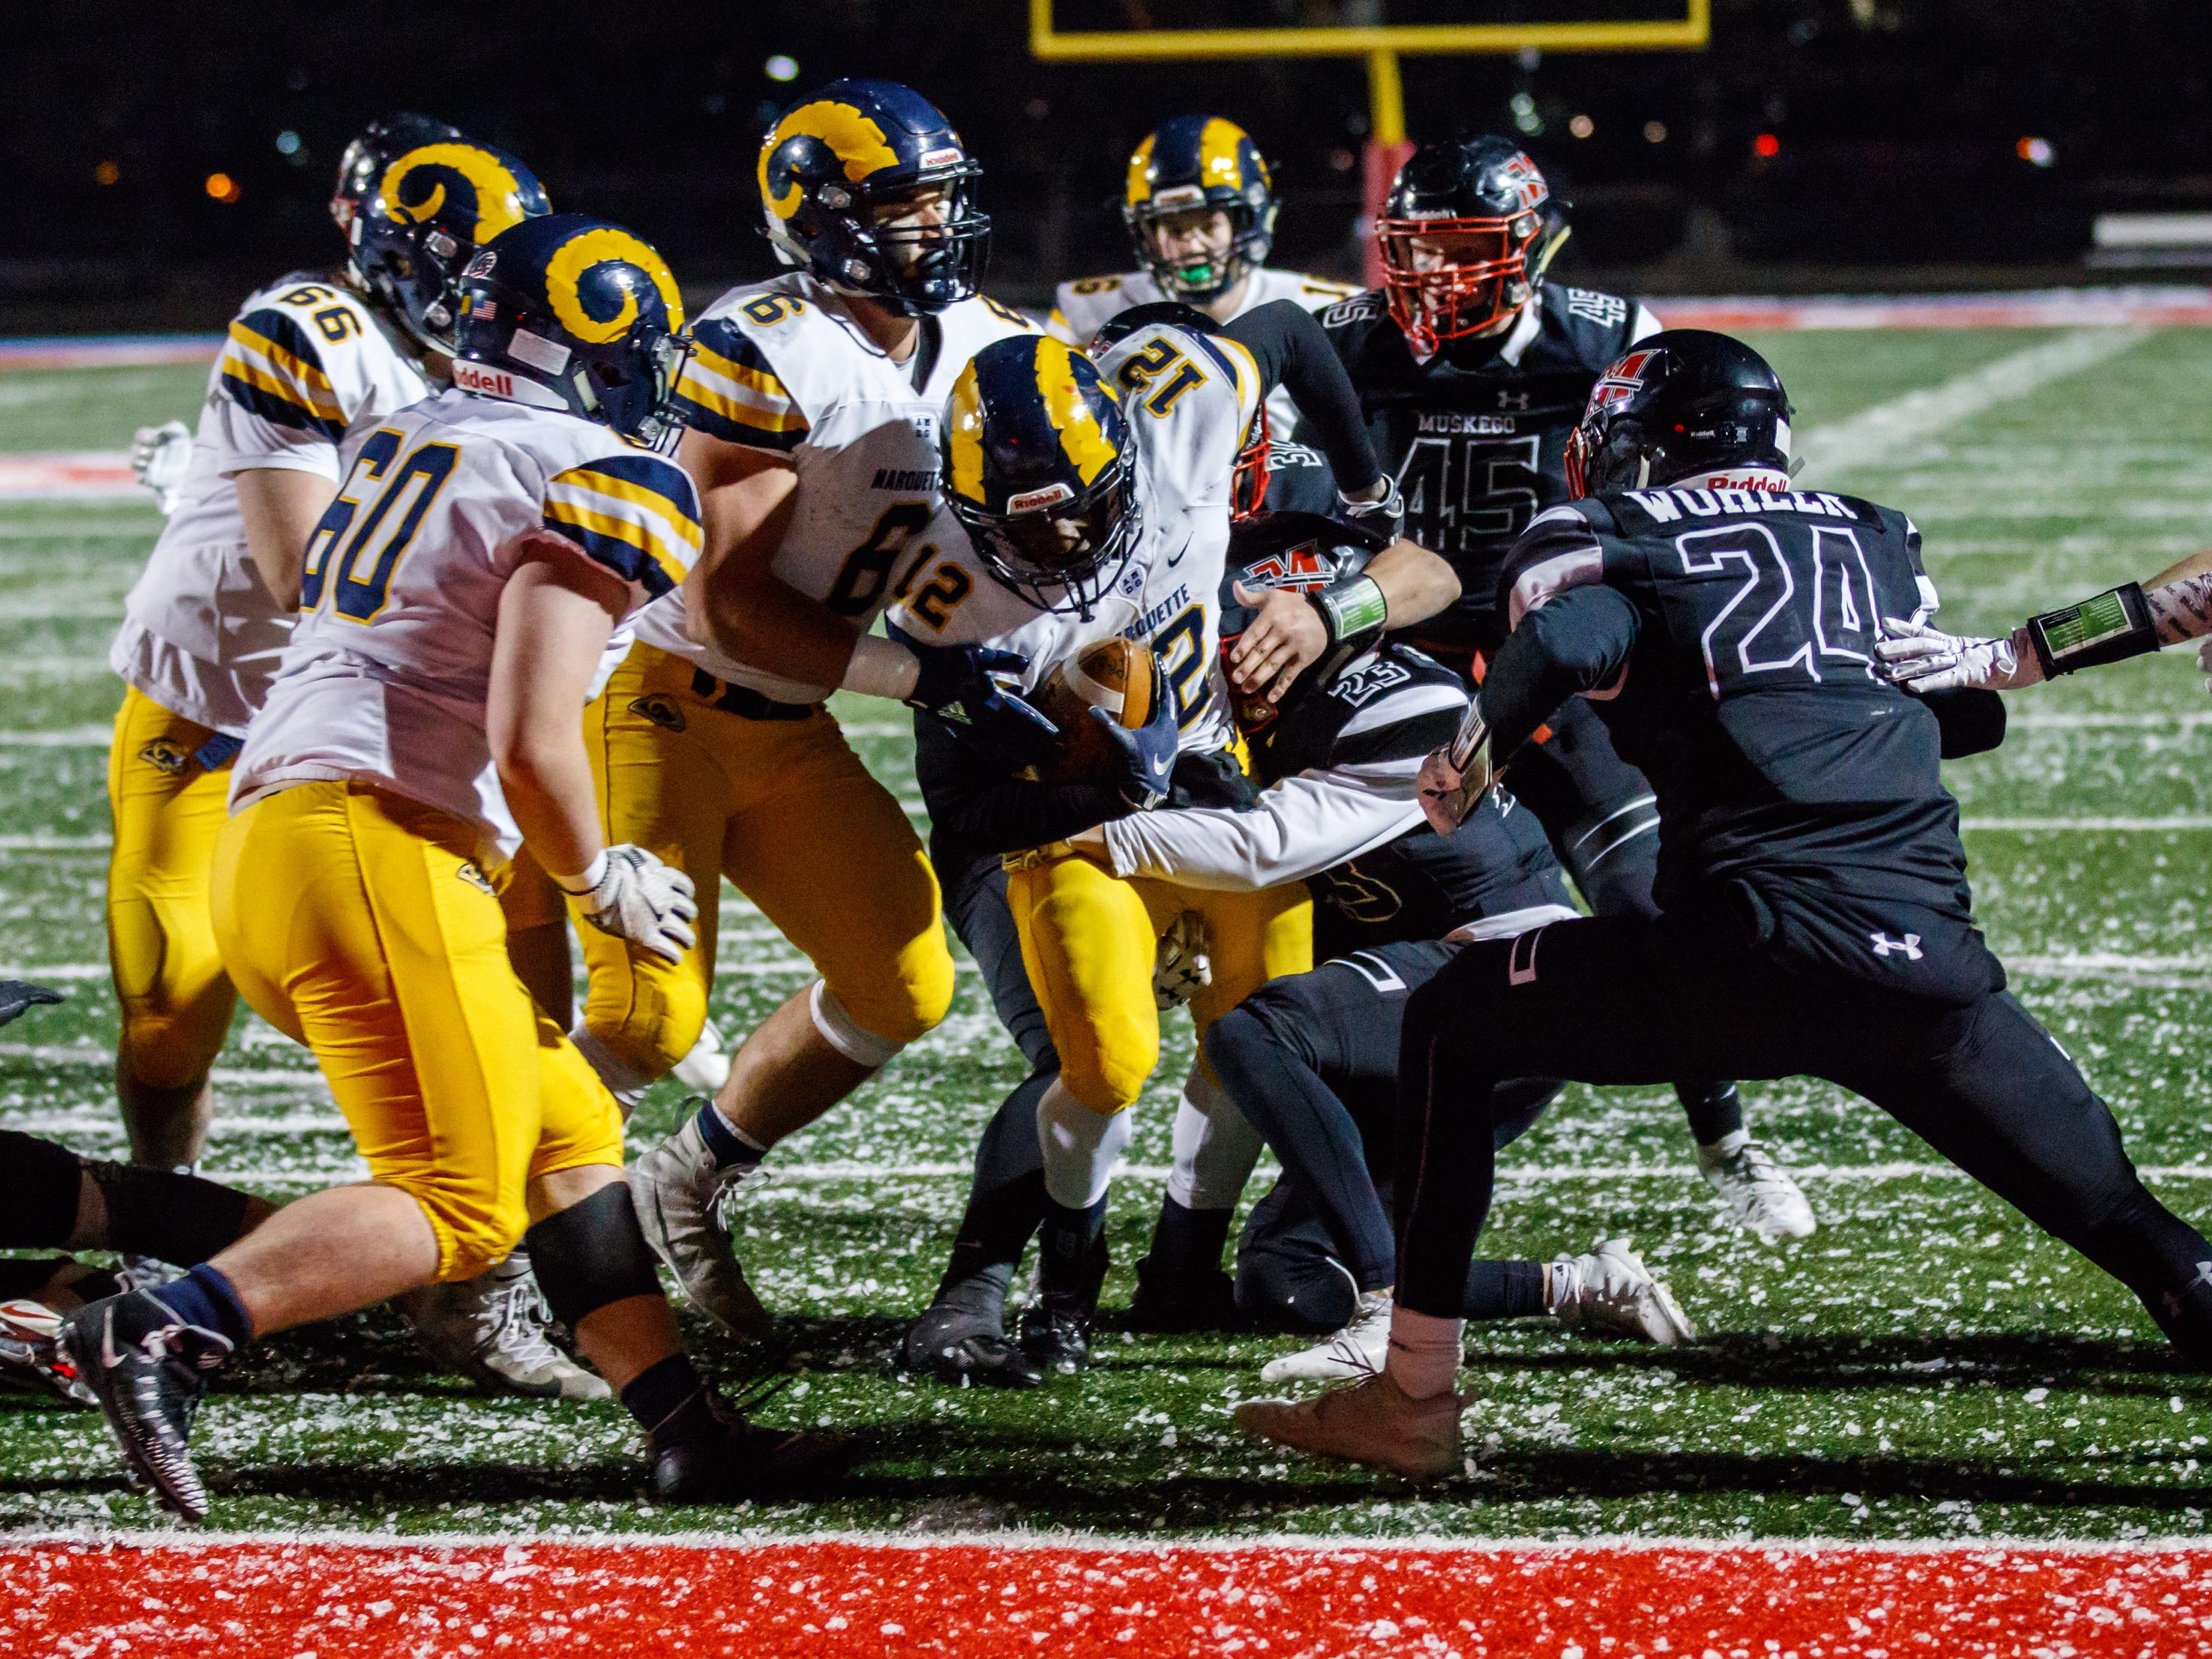 Marquette running back Daeleon Brown-Williams (12) is stopped by Muskego defenders at the goal line on forth down in the third quarter during the WIAA Division 1 Level 4 playoff game on Friday, Nov. 9, 2018.